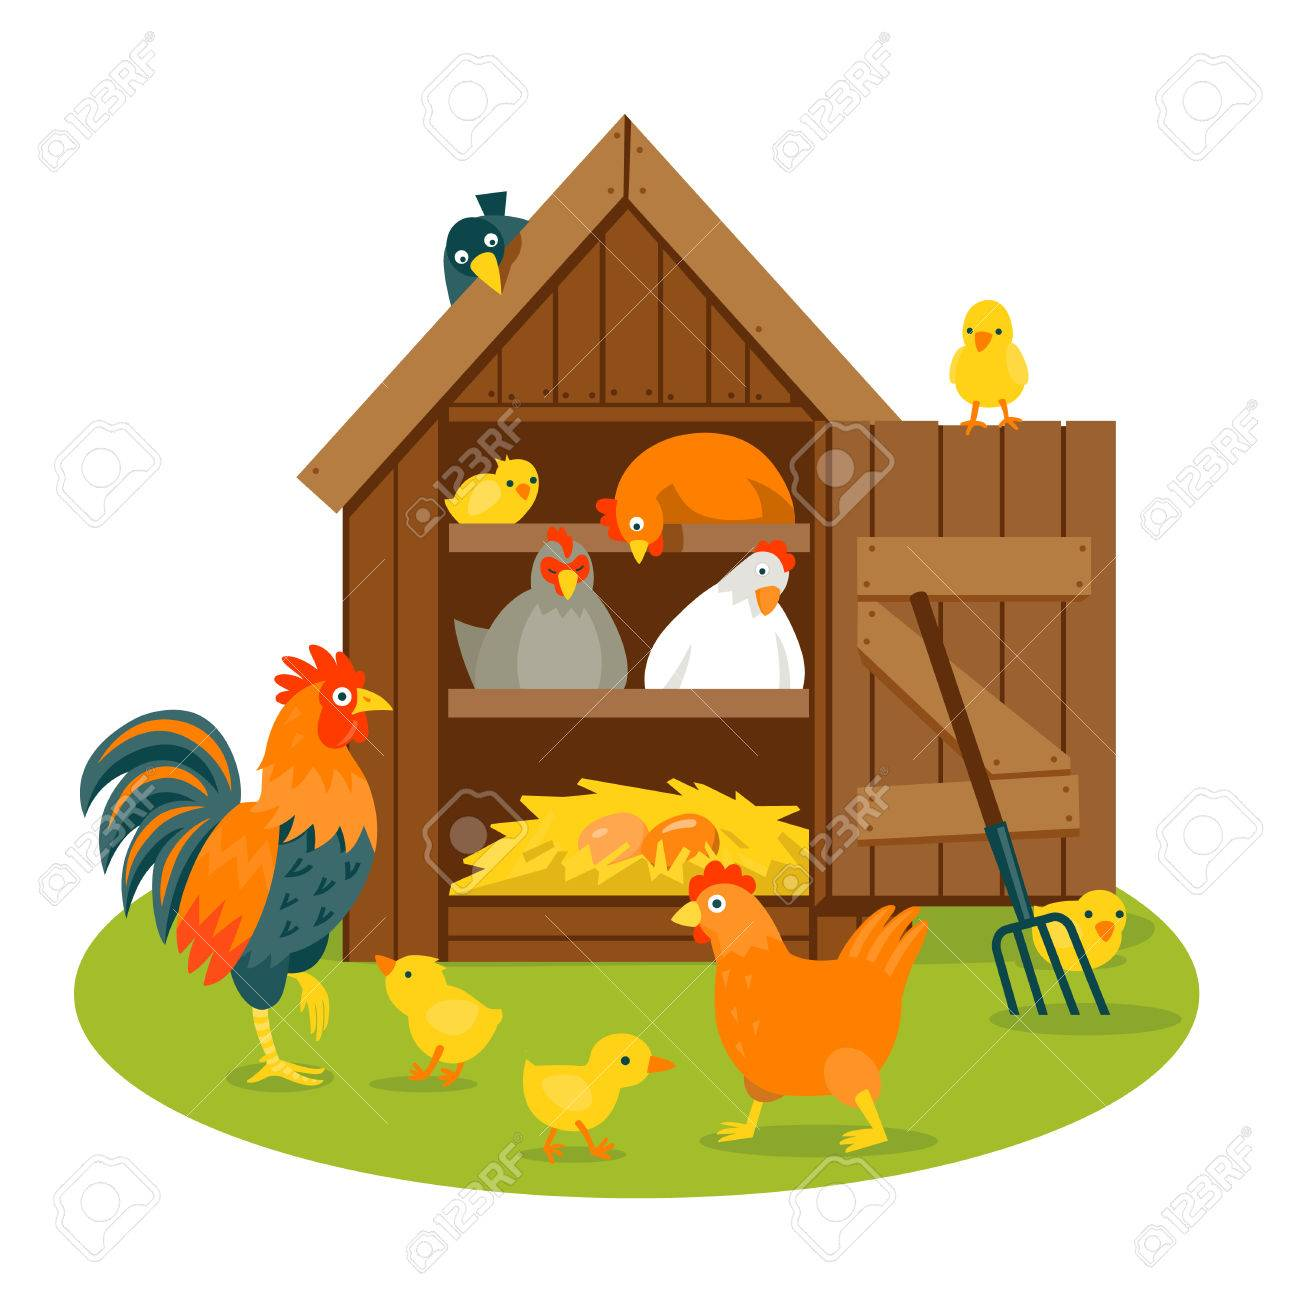 Hen House Clipart | Free download best Hen House Clipart on ...